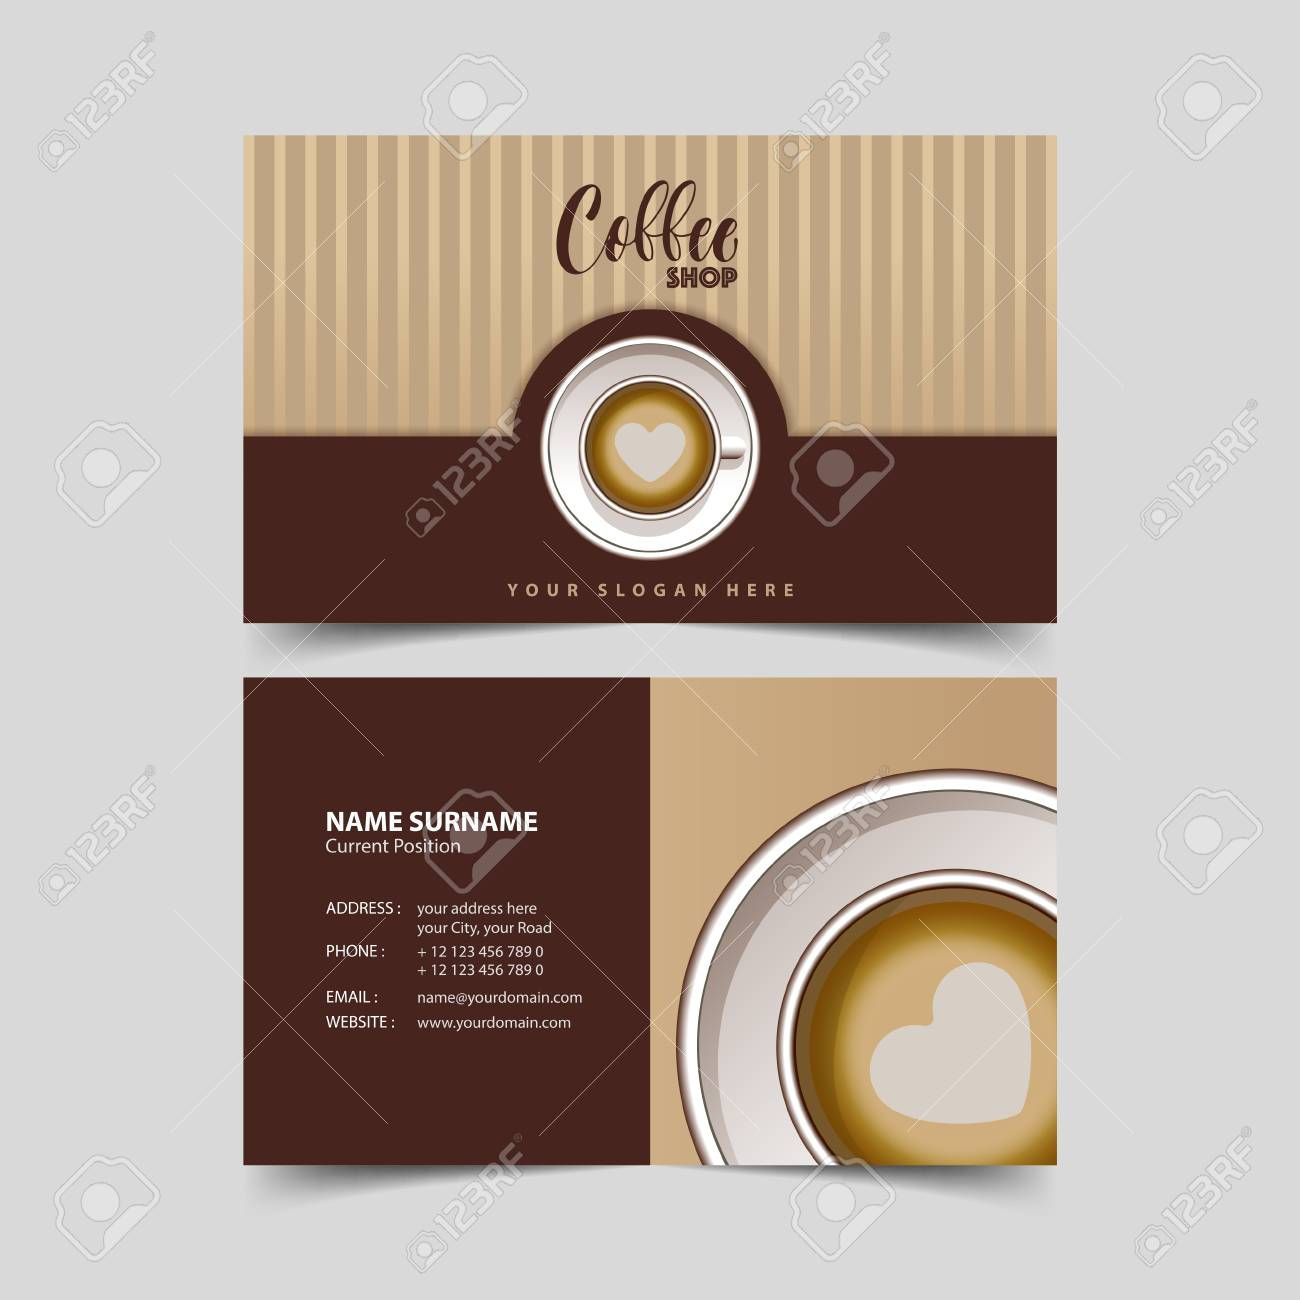 Coffee Shop Business Card Design Template In Coffee Business Card Template Free C Free Business Card Templates Card Templates Free Coffee Shop Business Card